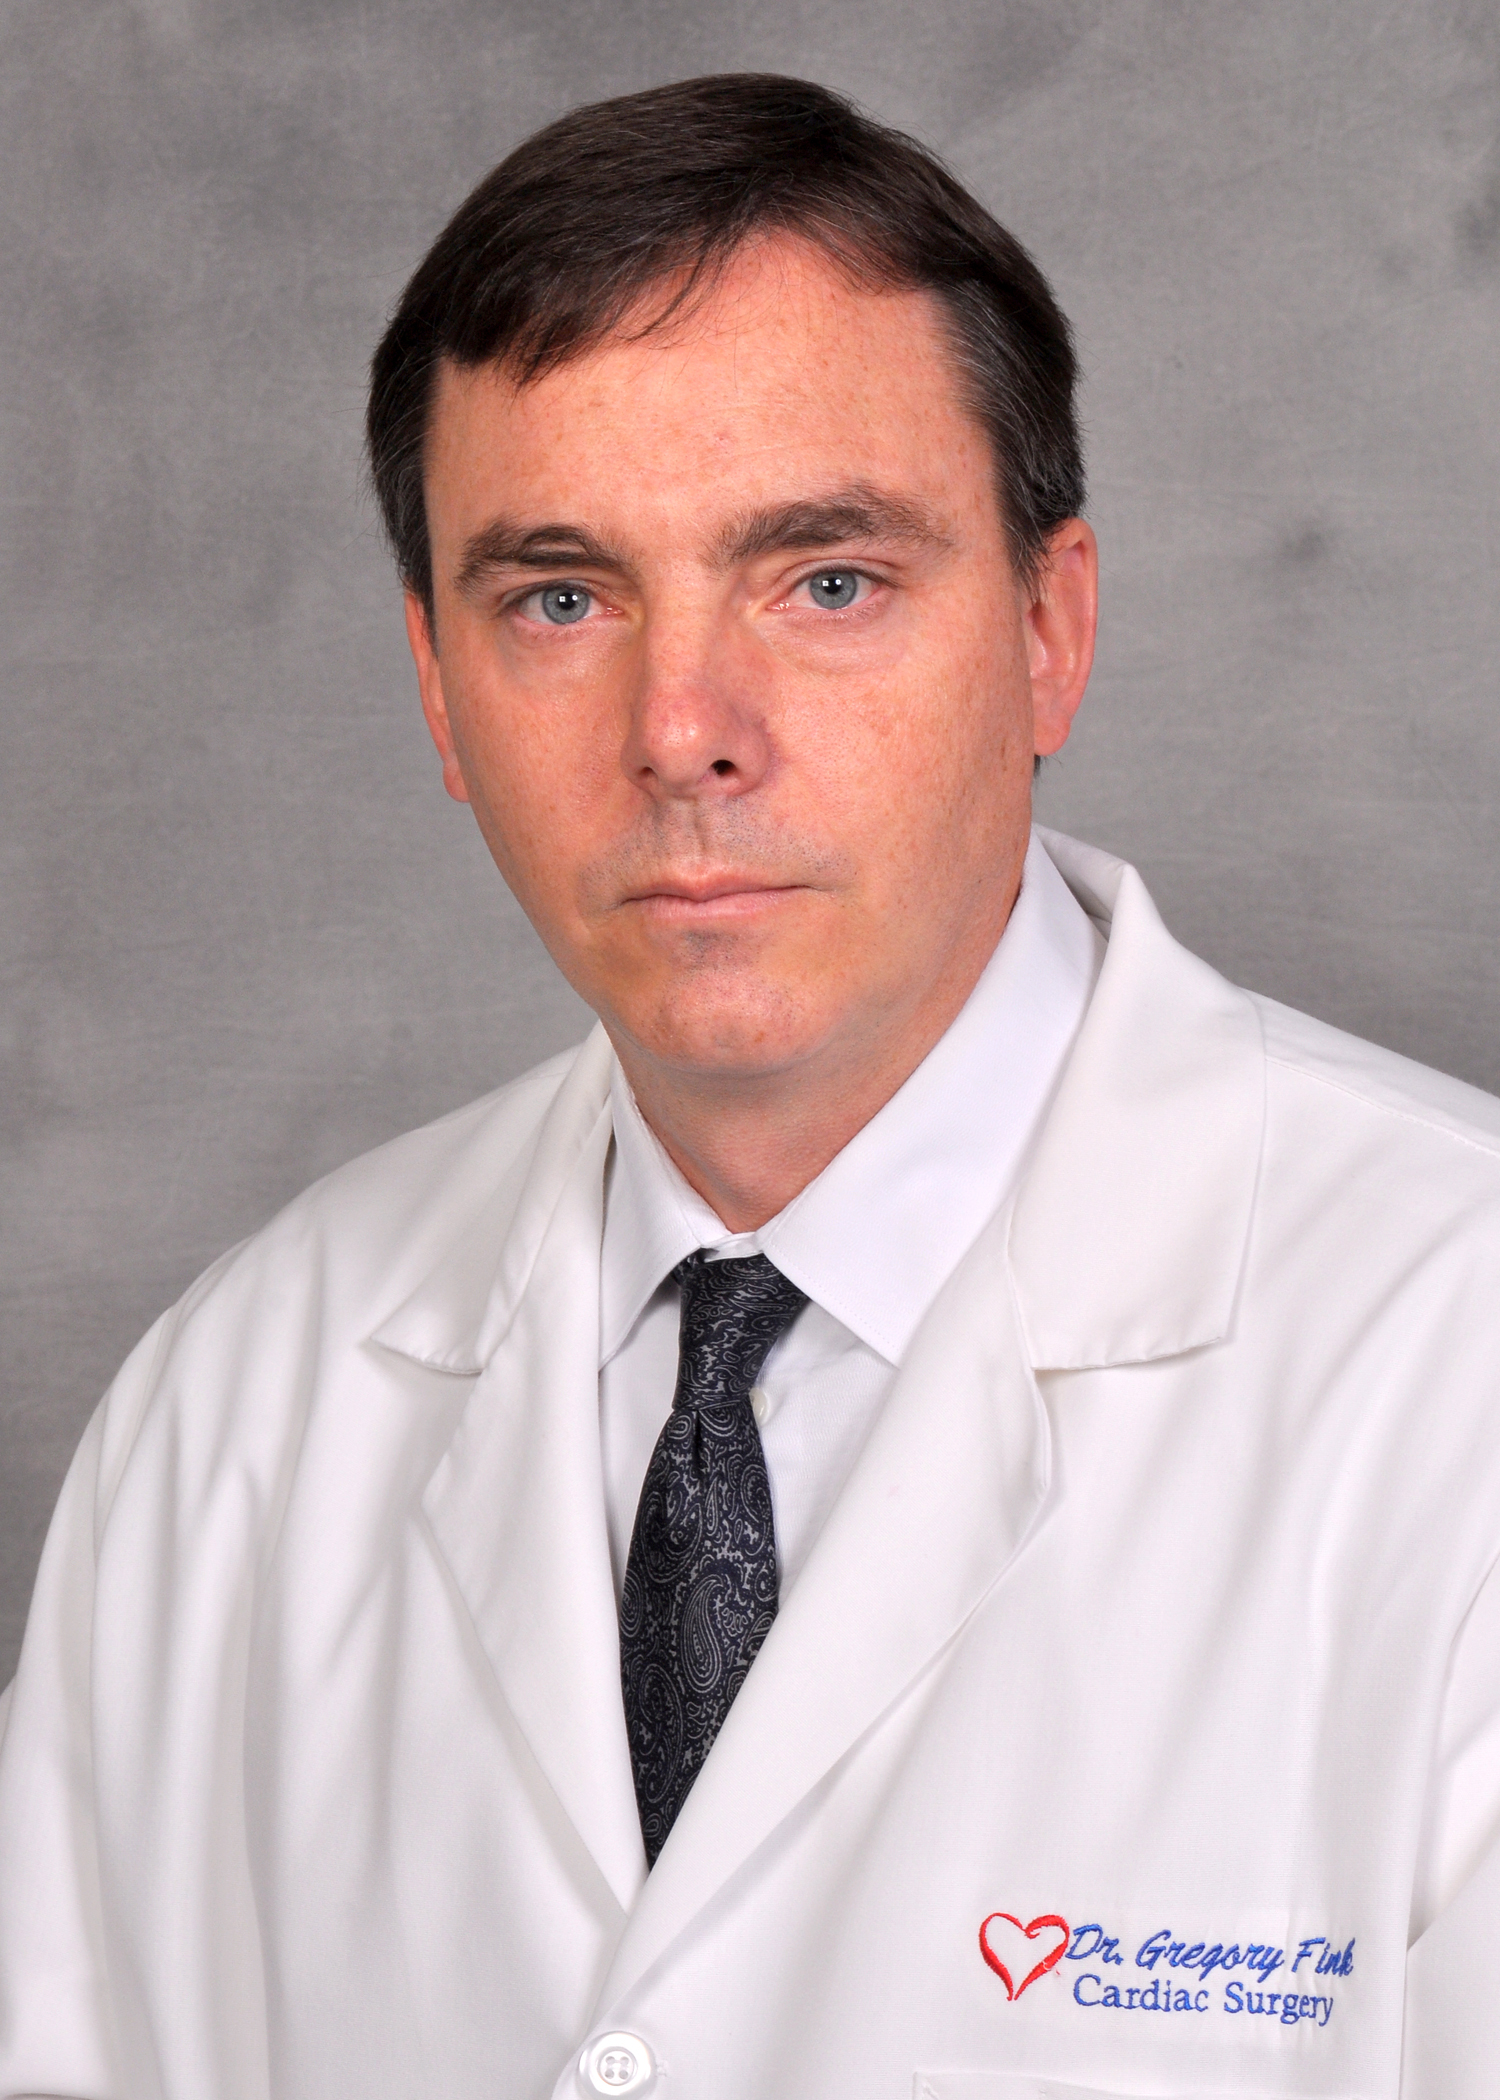 upstate heart surgeon among best in state one of the lowest gregory fink md